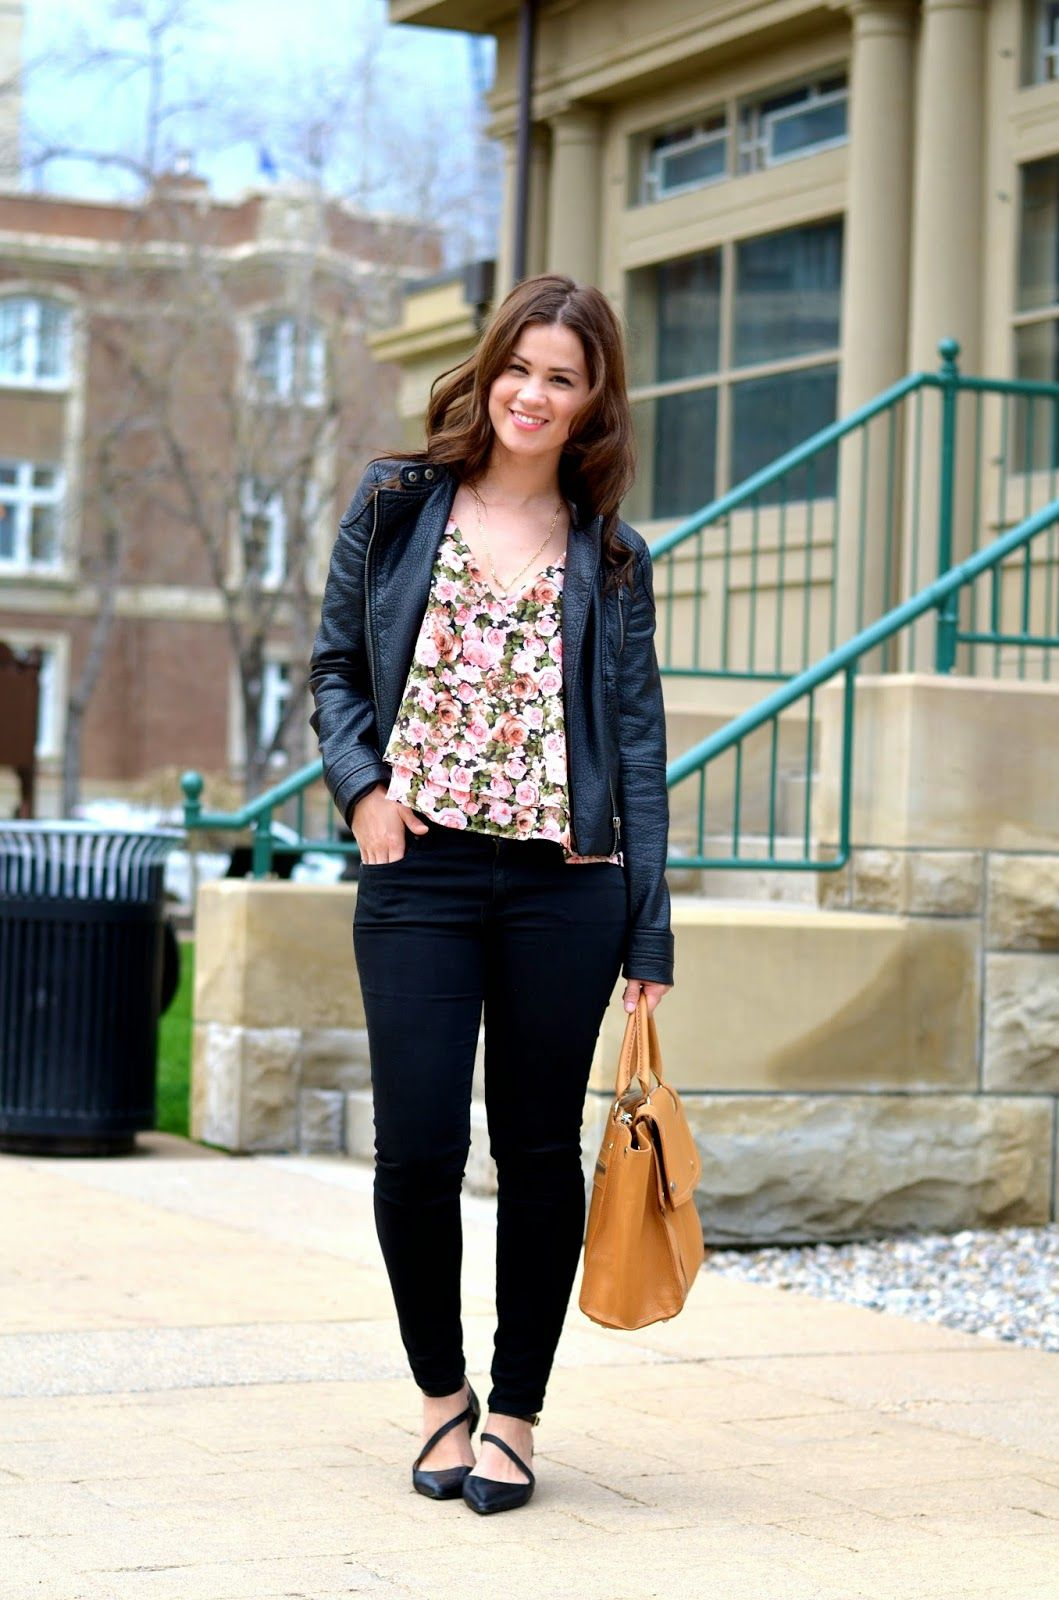 Blogger Born Lippy pairs Gap denim with floral prints and leather.